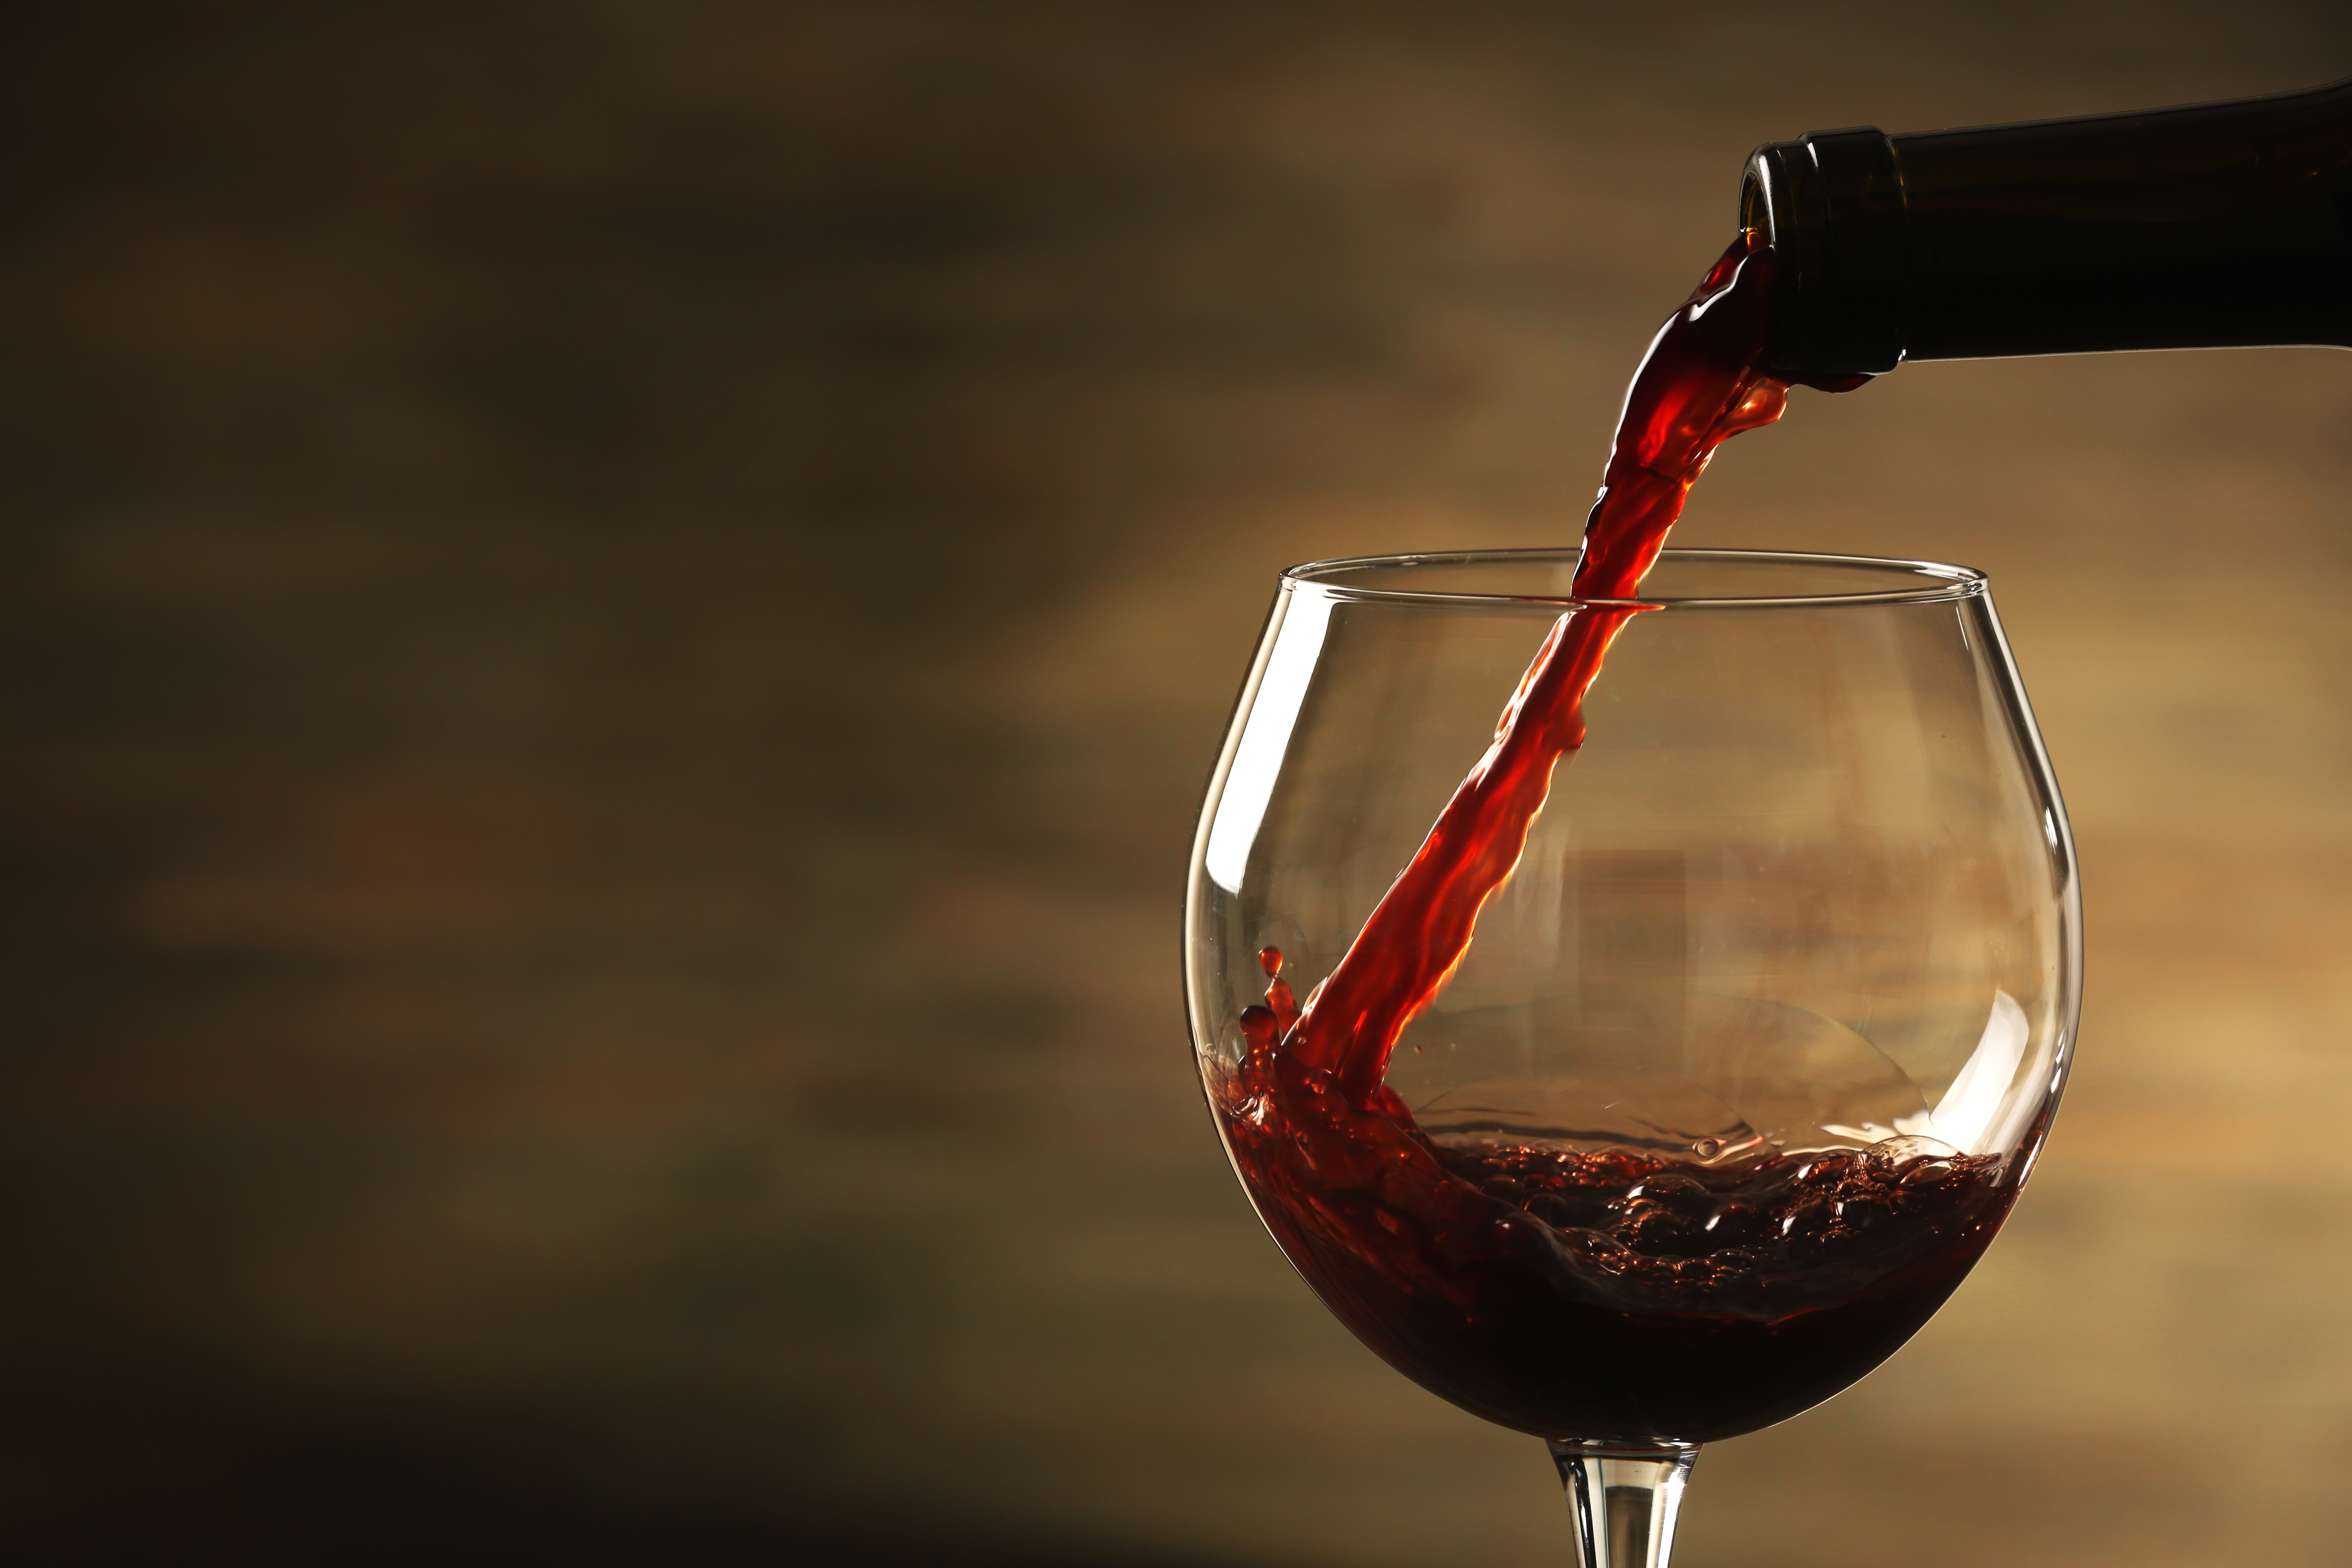 red wine pouring | EpicuriousTravelers.com